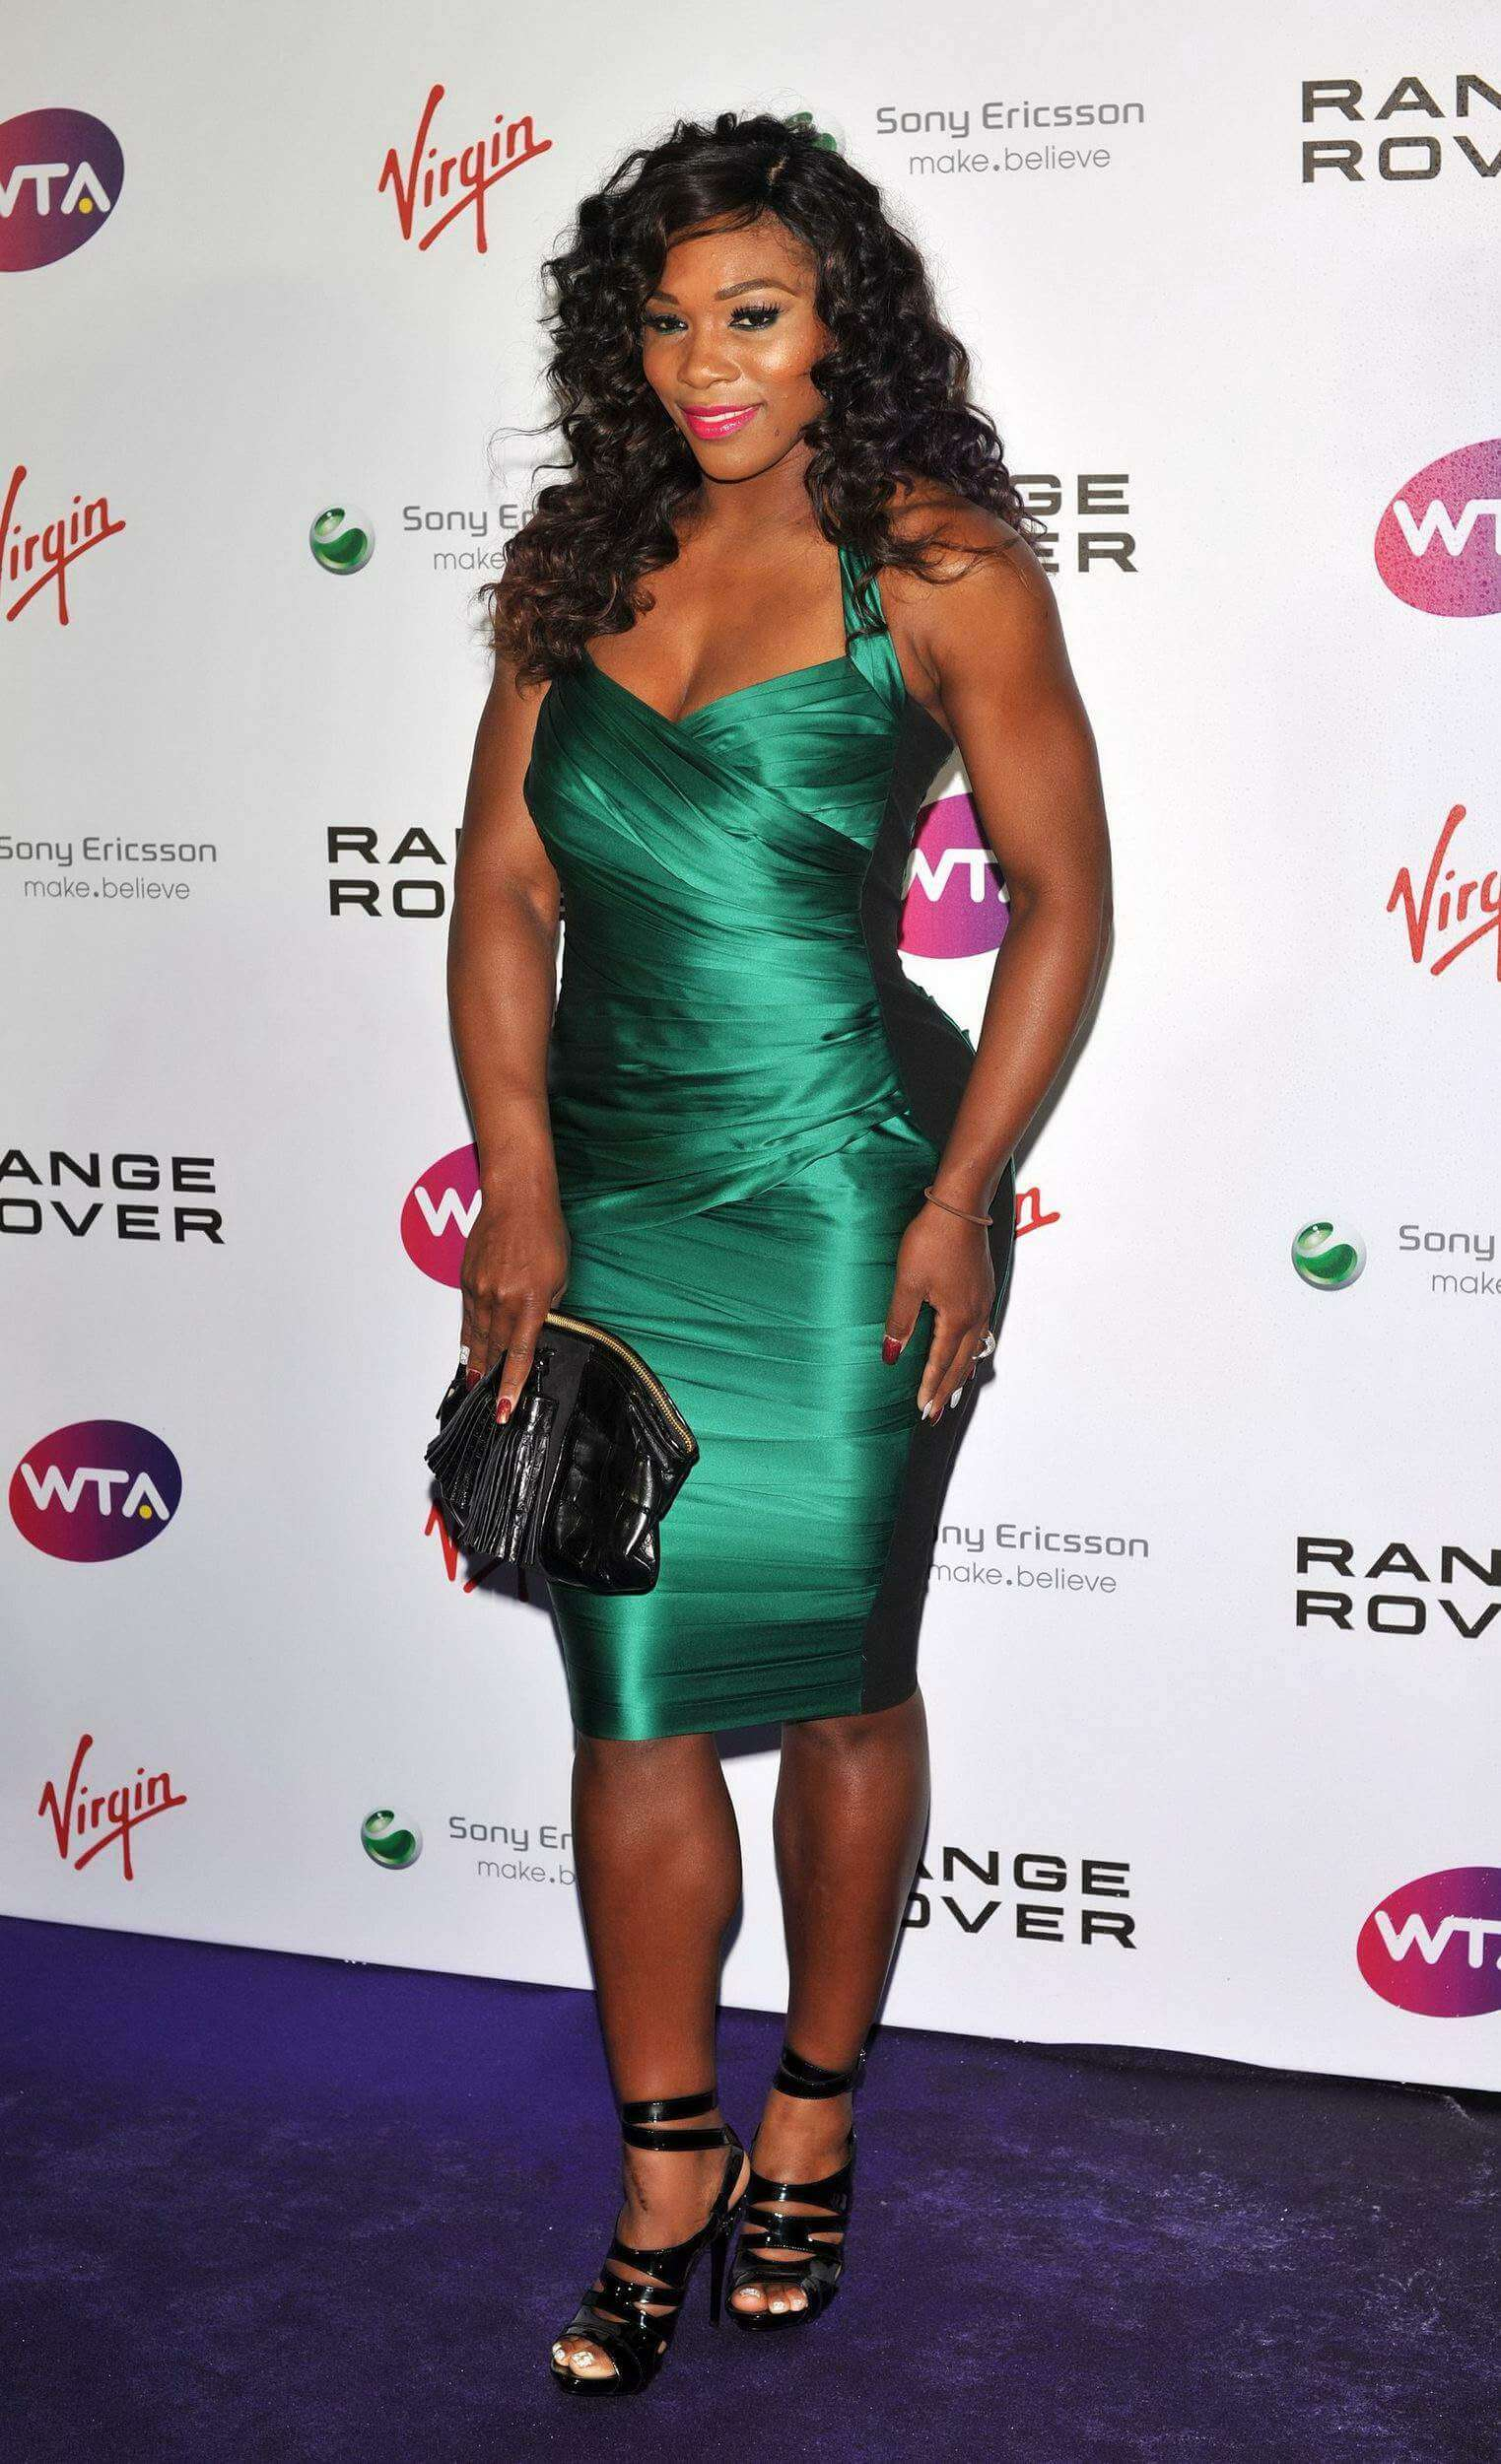 Serena Williams hot busty photo